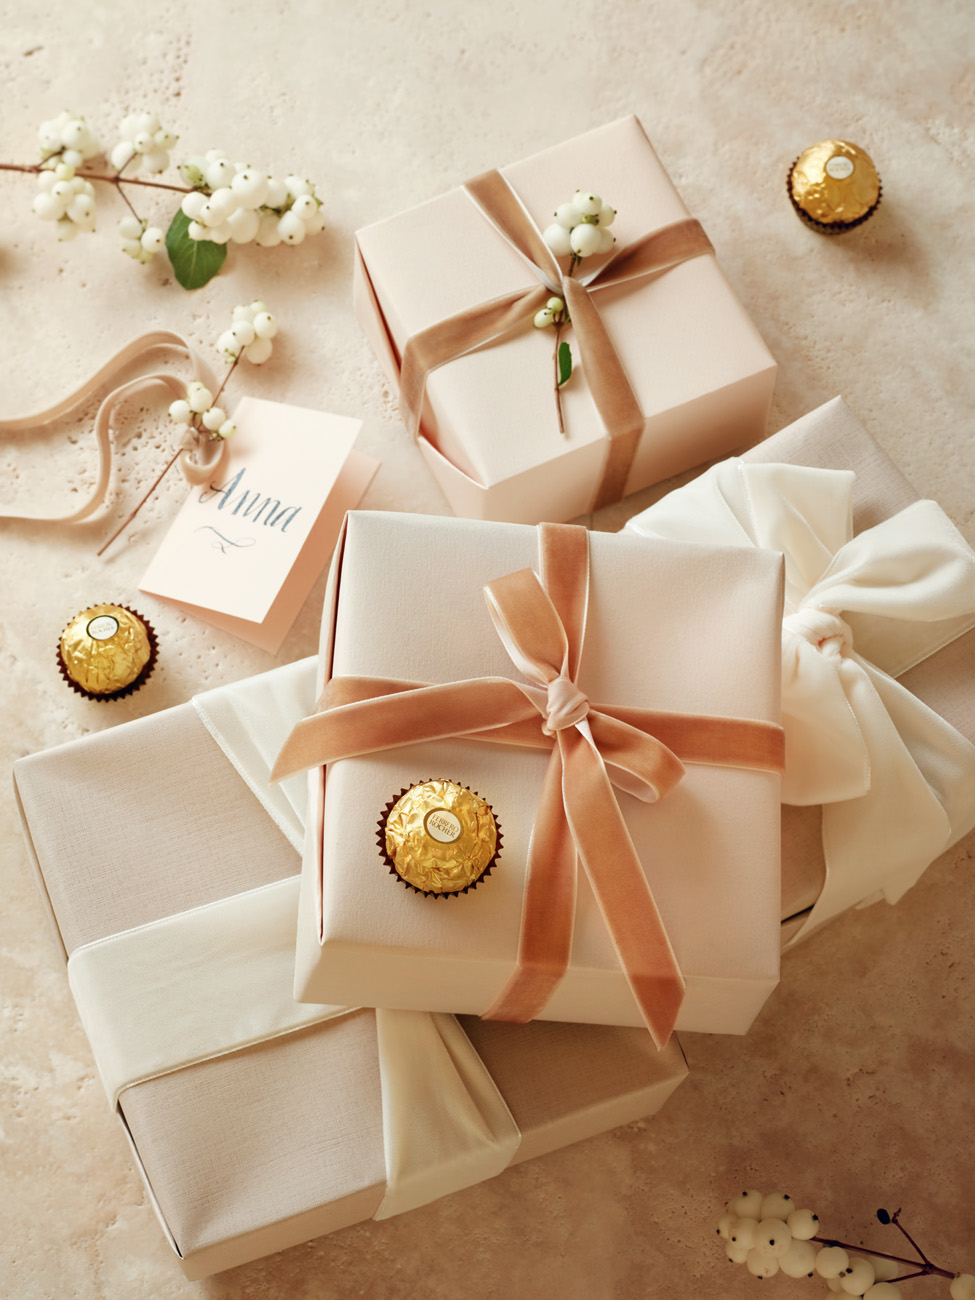 Still life picture with beige gifts and Ferrero Rocher